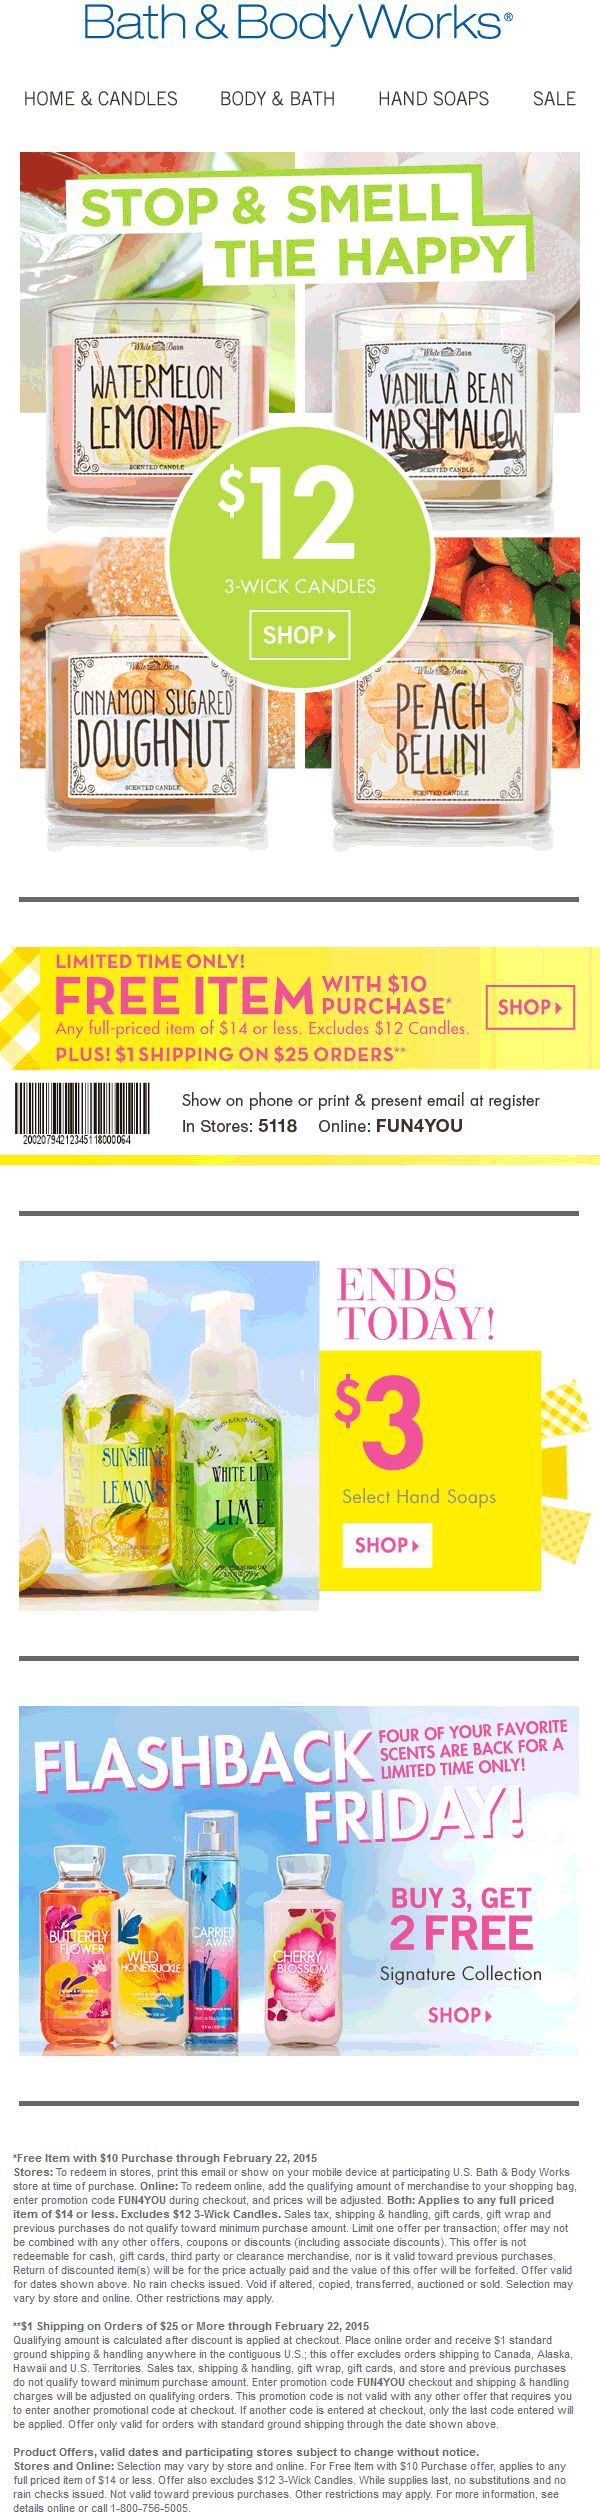 How can you save money with printable hibbett sports coupons 10 - Pinned February 20th Any 14 Item Free With 10 Spent At Bath Bodyworks Or Online